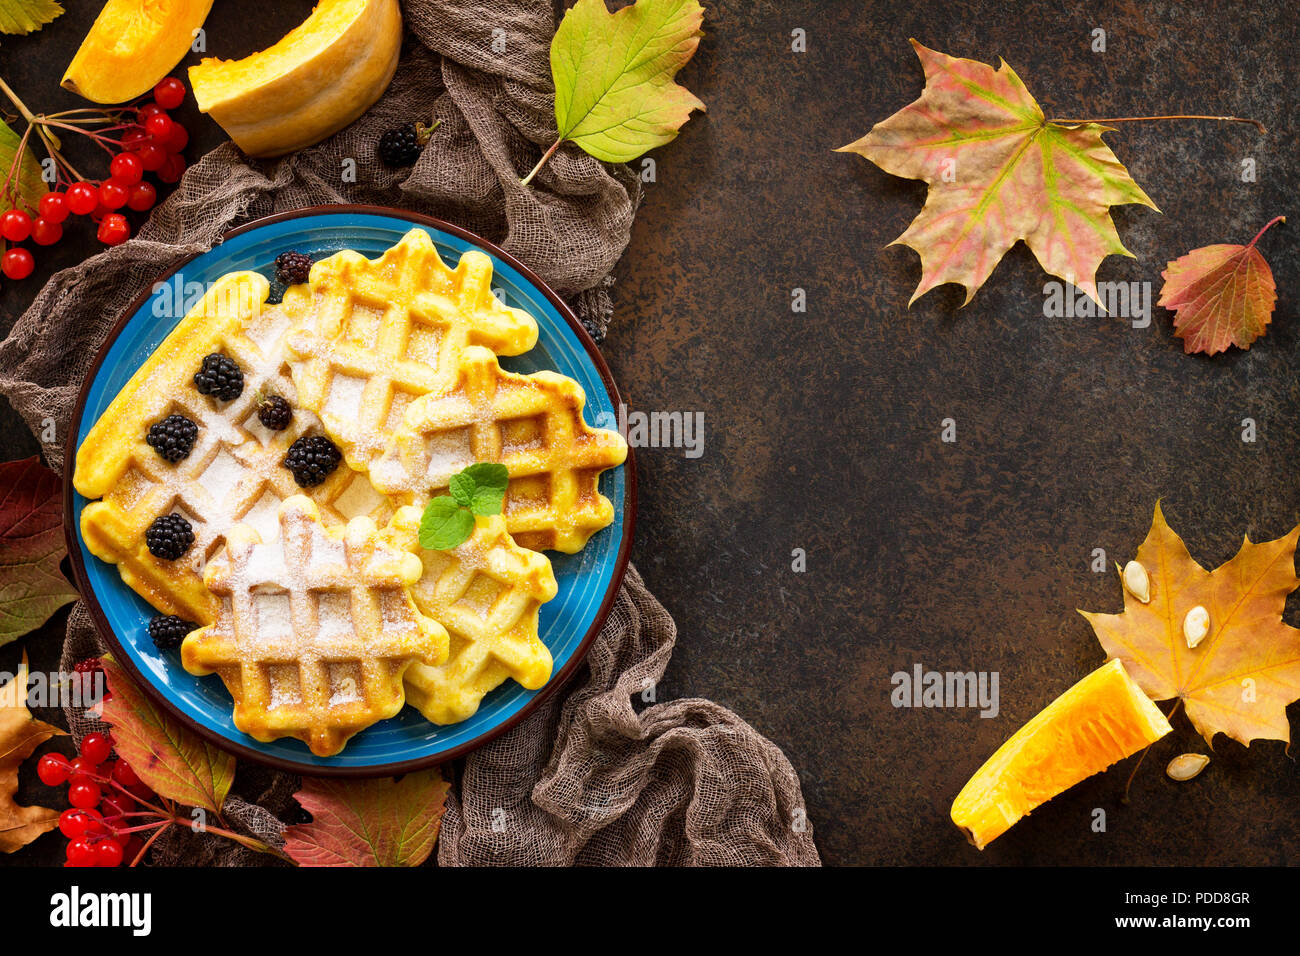 Breakfast table with pumpkin waffles and fresh blackberries on a stone or slate background. Top view flat lay background. Copy space. - Stock Image